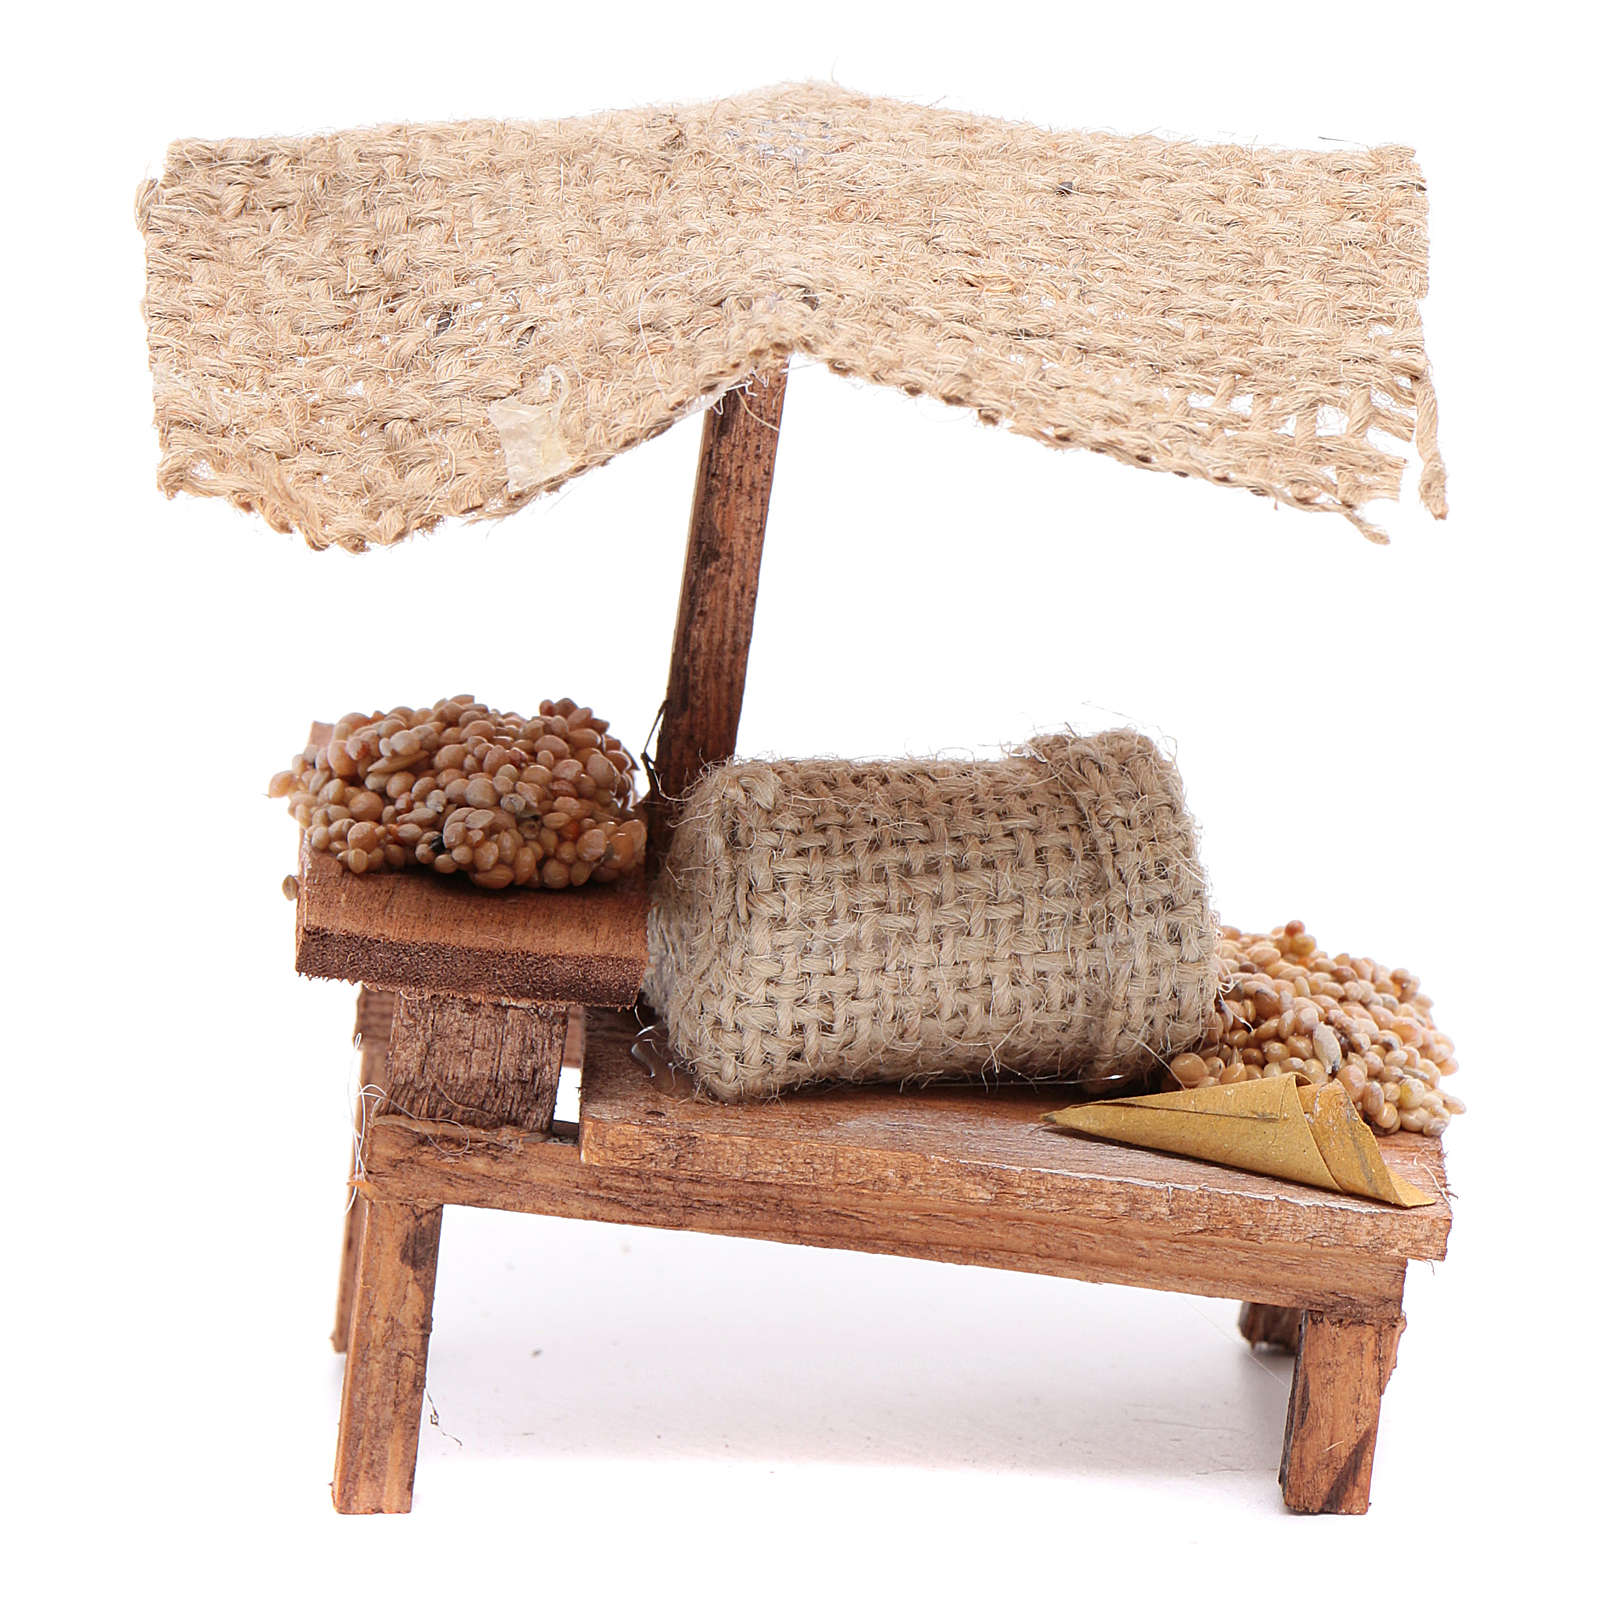 Stall with wheat for DIY nativities 4